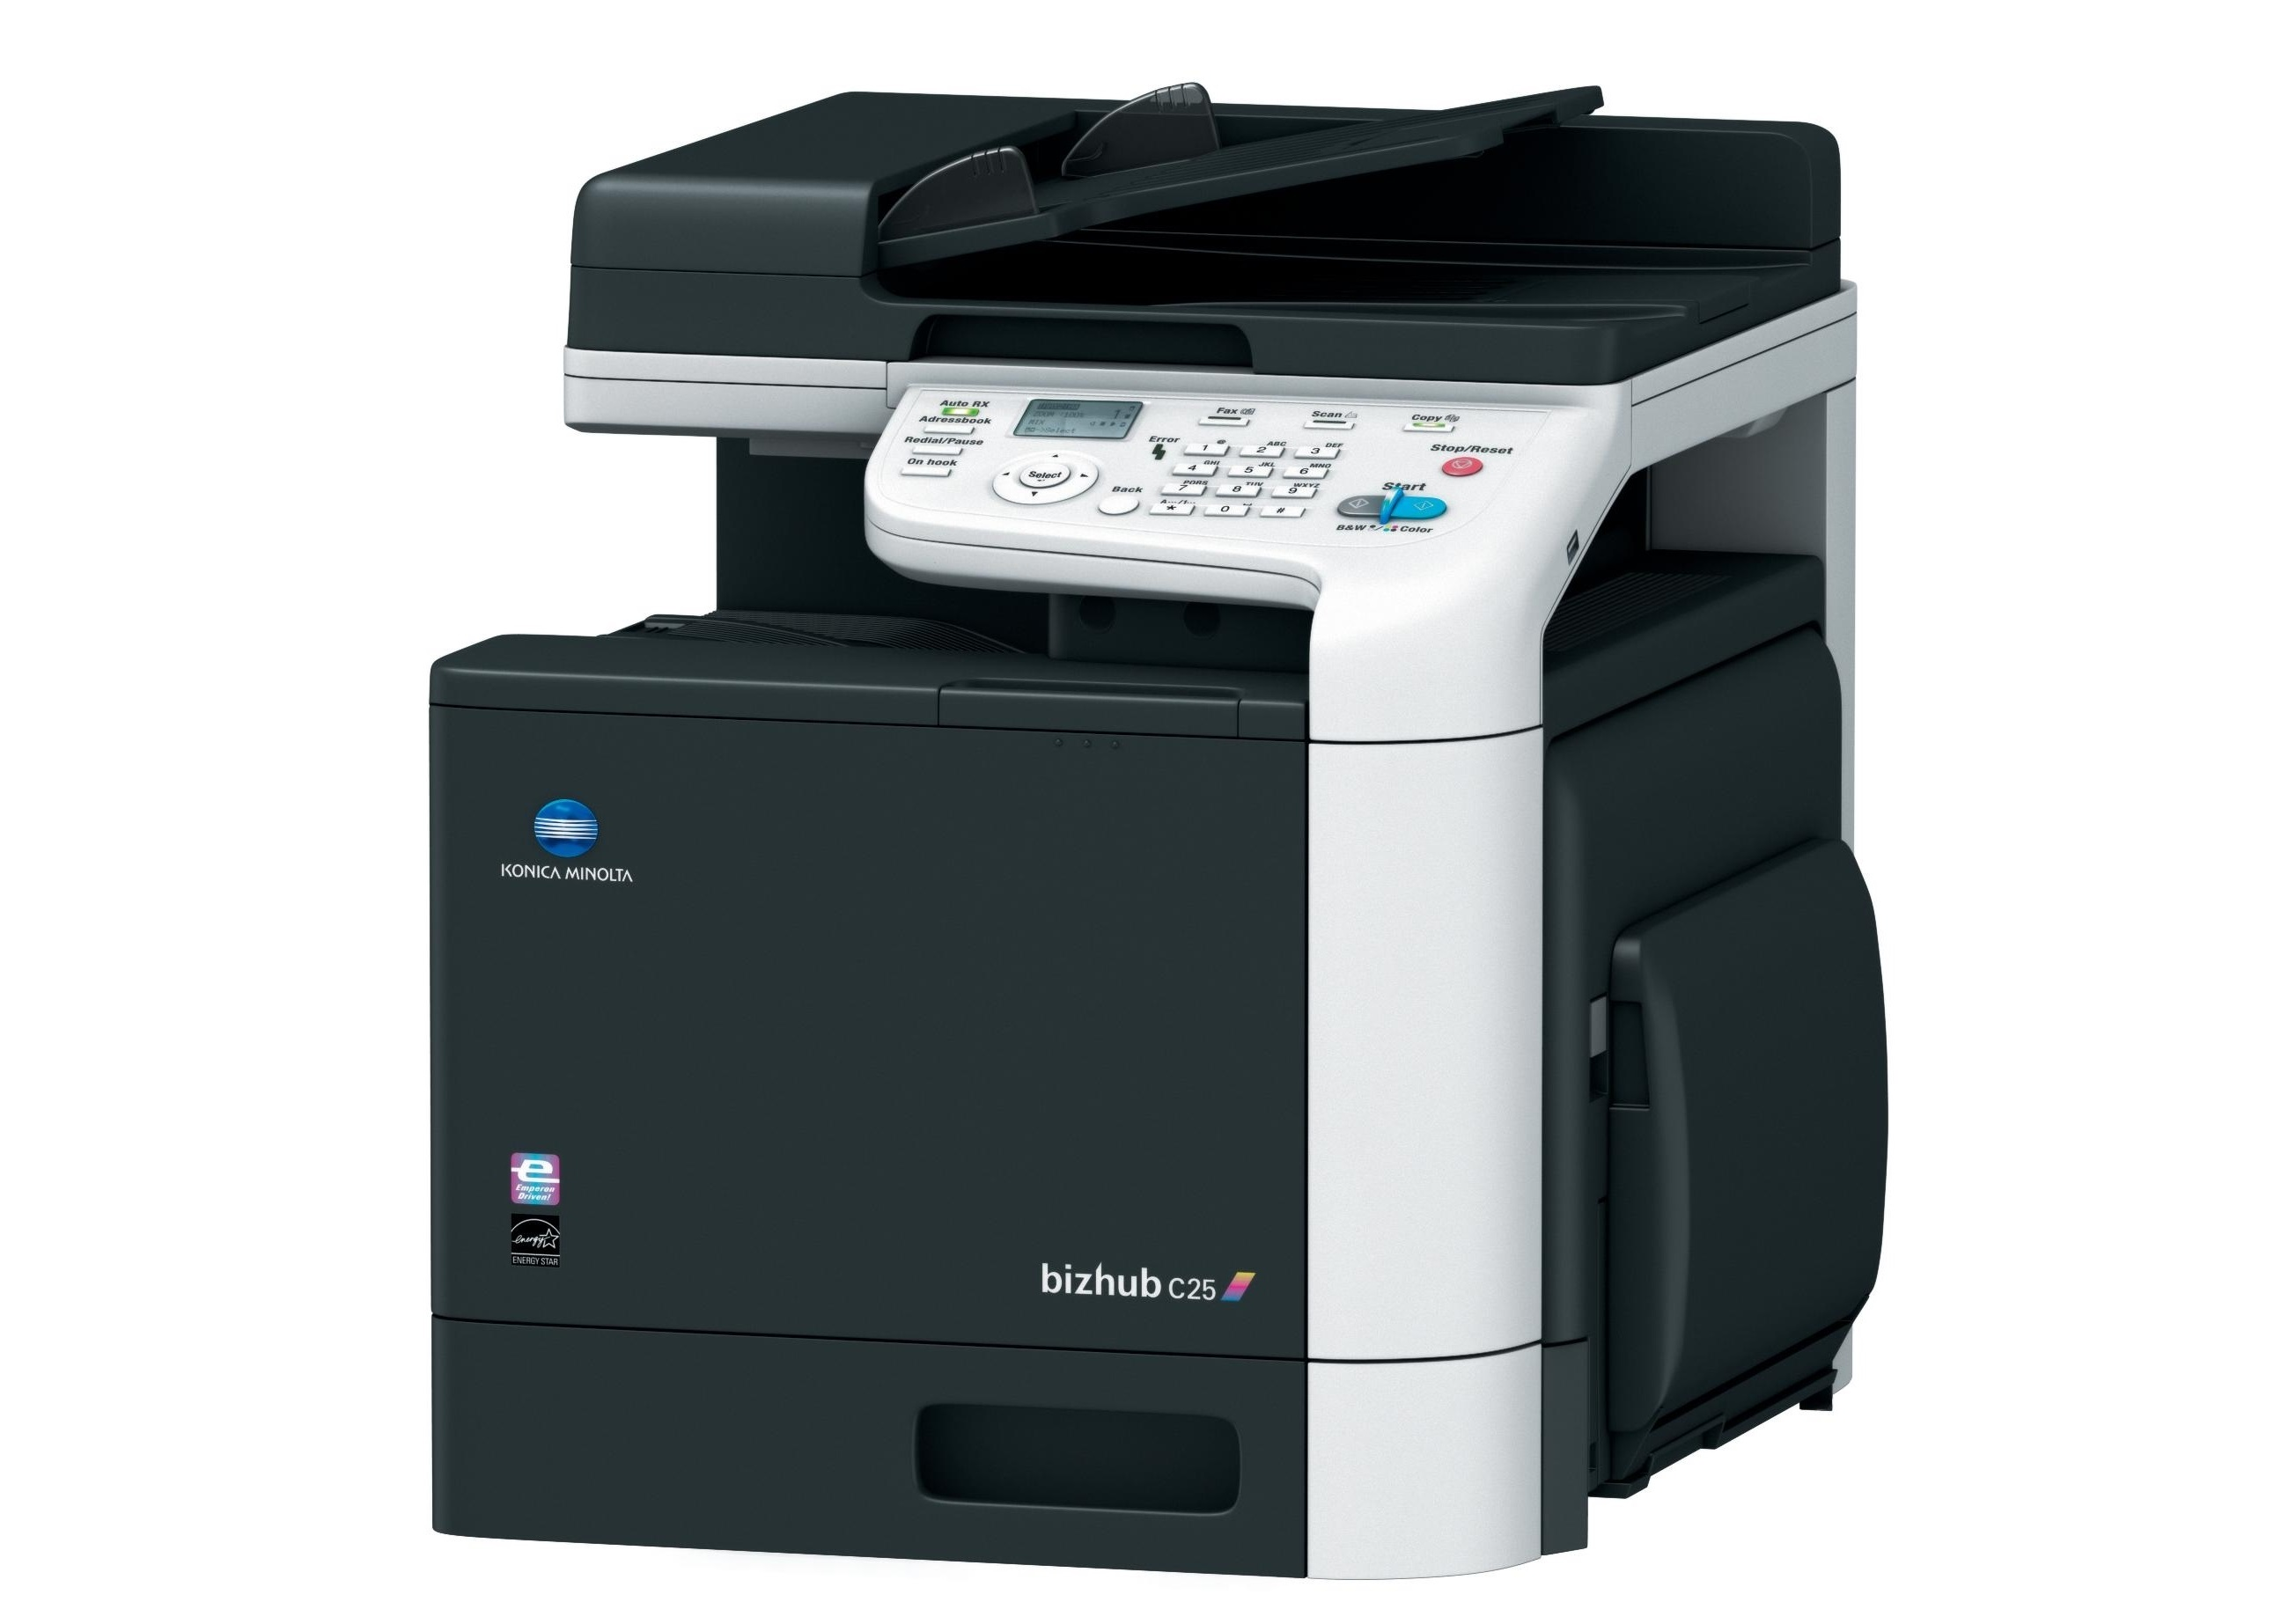 konica minolta bizhub c452 driver windows 7 32 bit